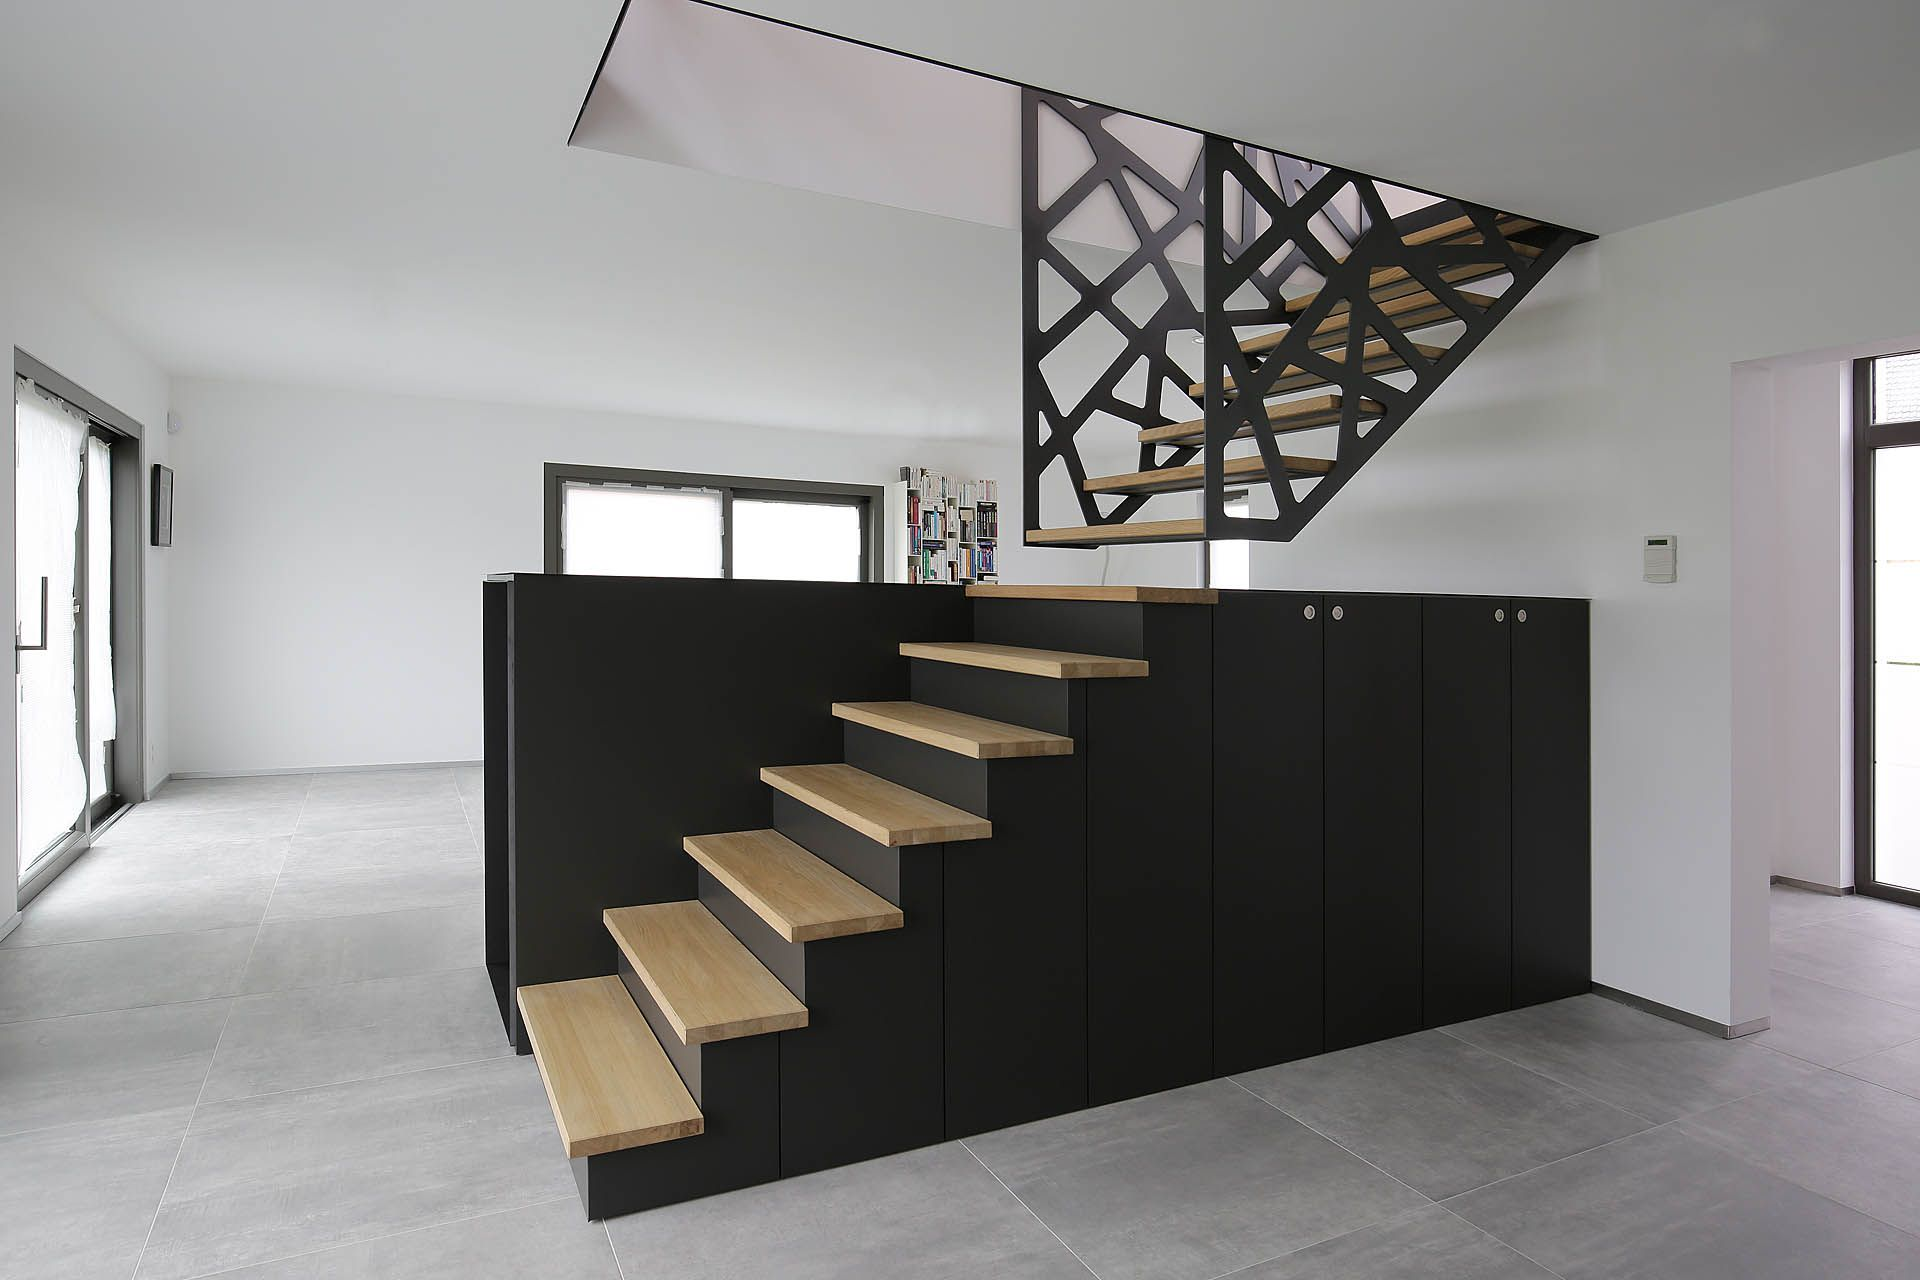 yves deneyer menuiserie m tallique ferronnerie azerty pinterest escaliers et mezzanine. Black Bedroom Furniture Sets. Home Design Ideas